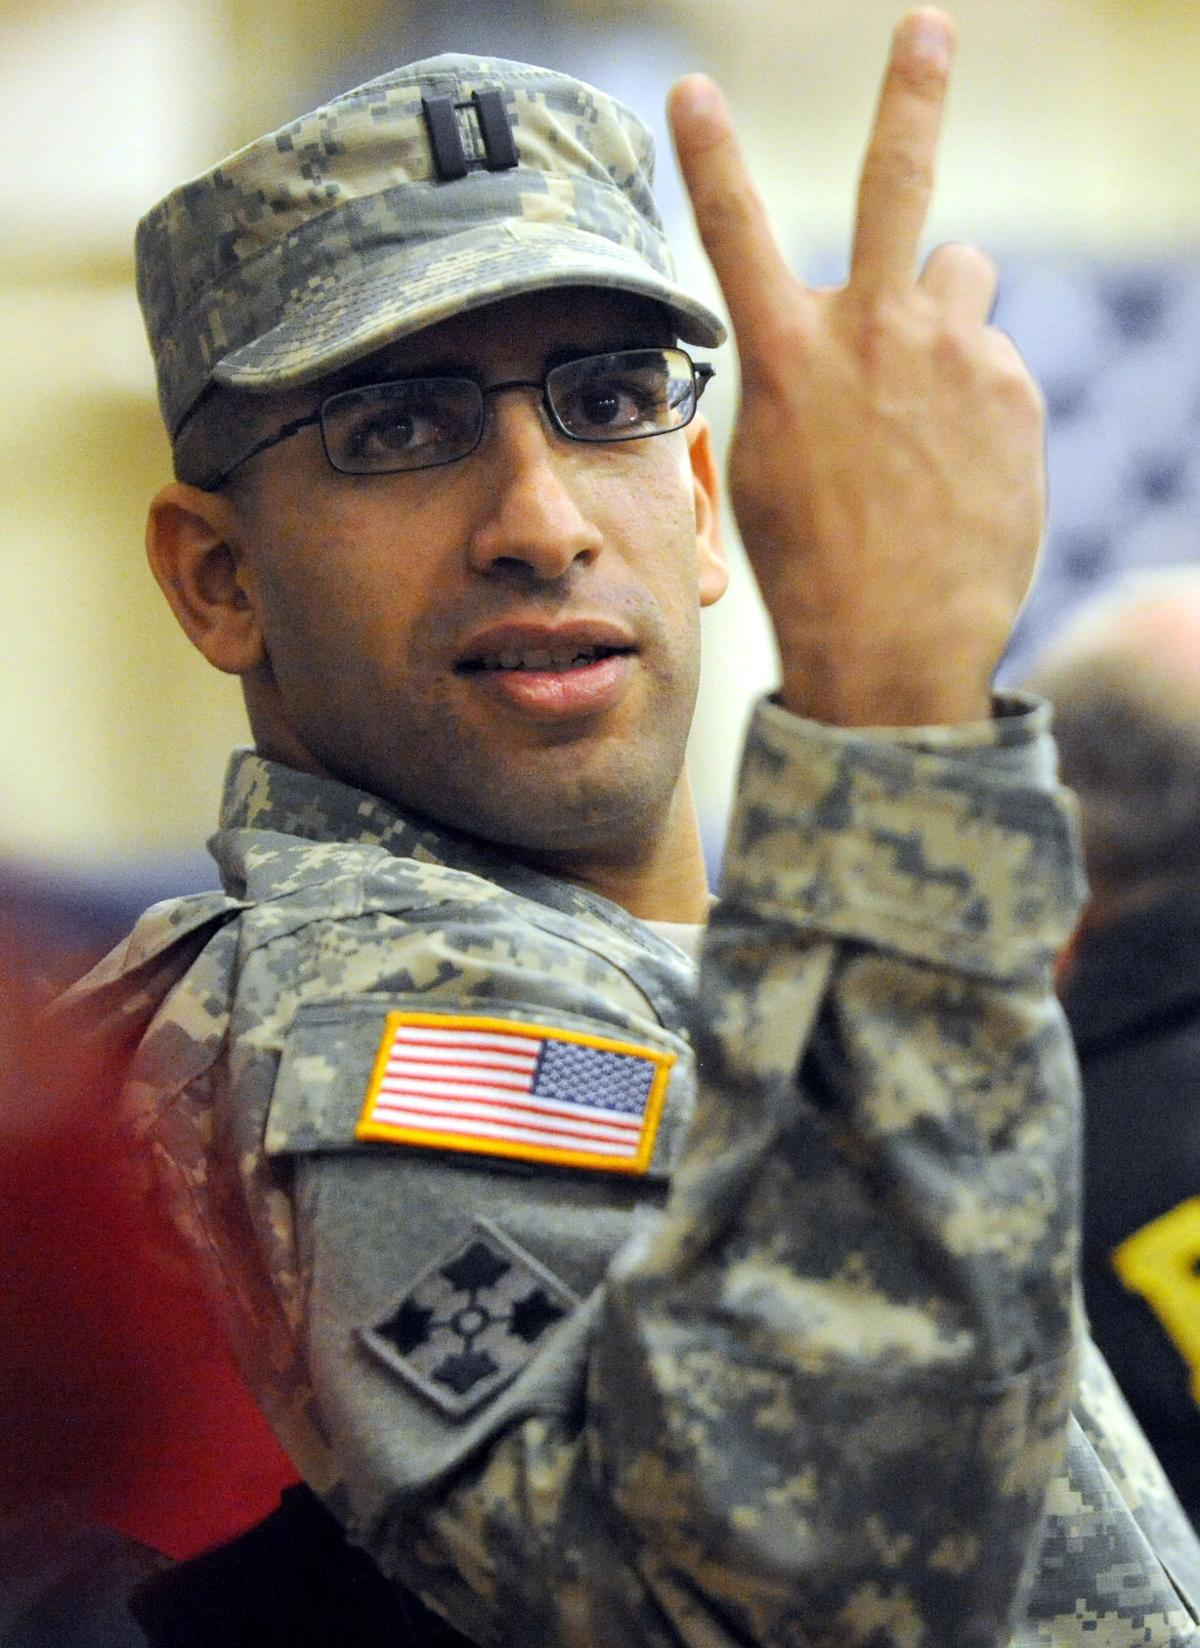 Six months after battle, Carson soldier on road to recovery